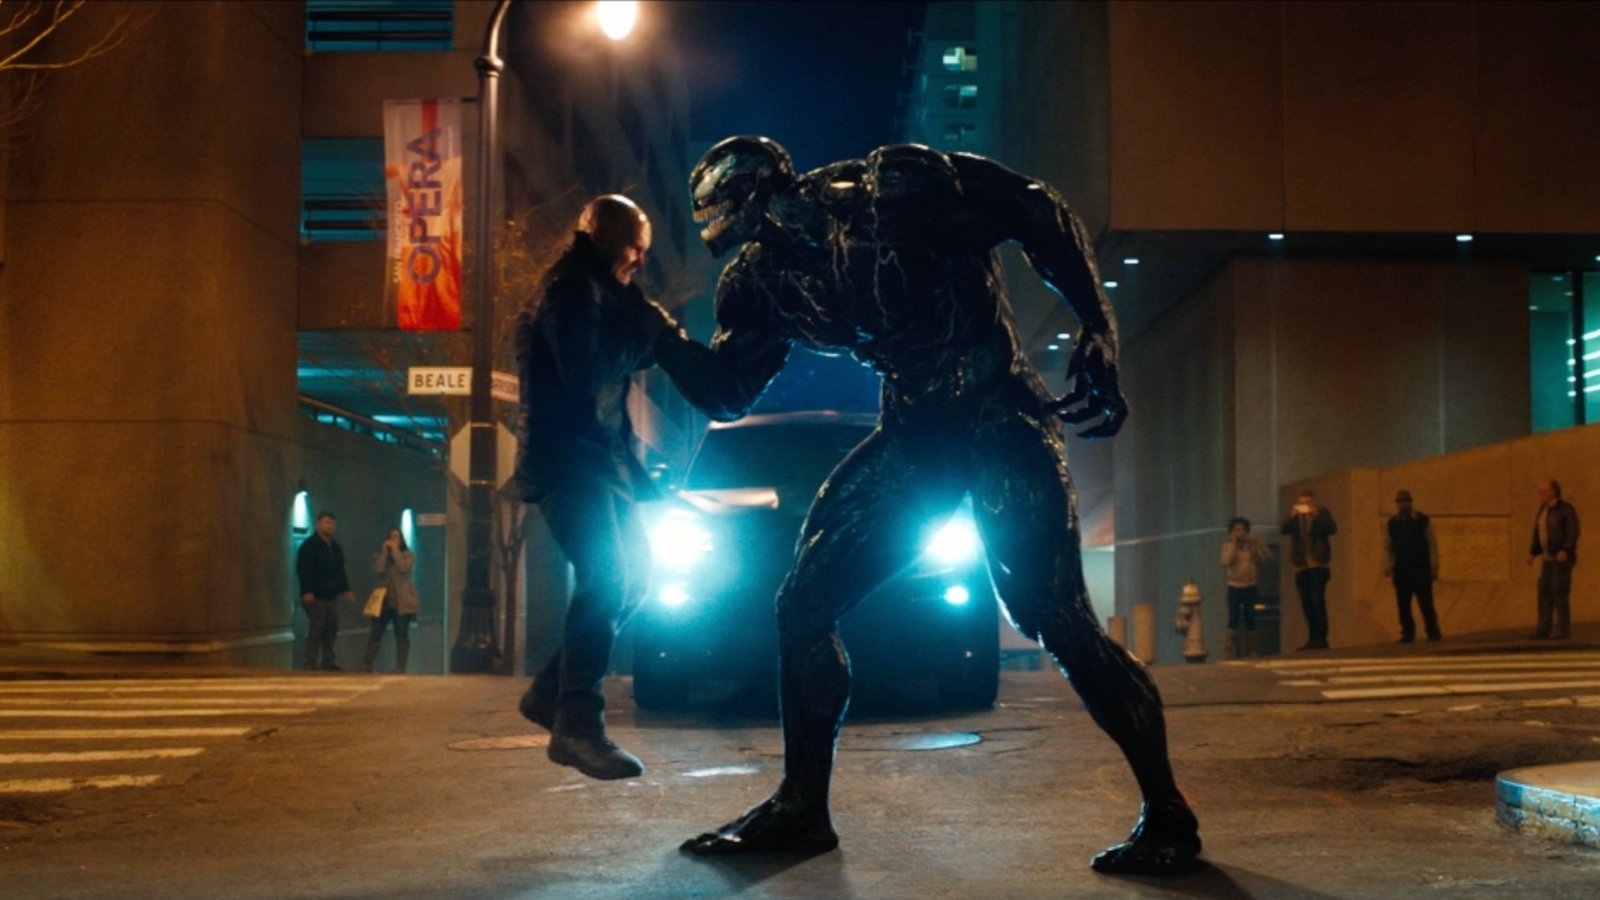 Marvel Venom Let There Be Carnage plot, cast and release date